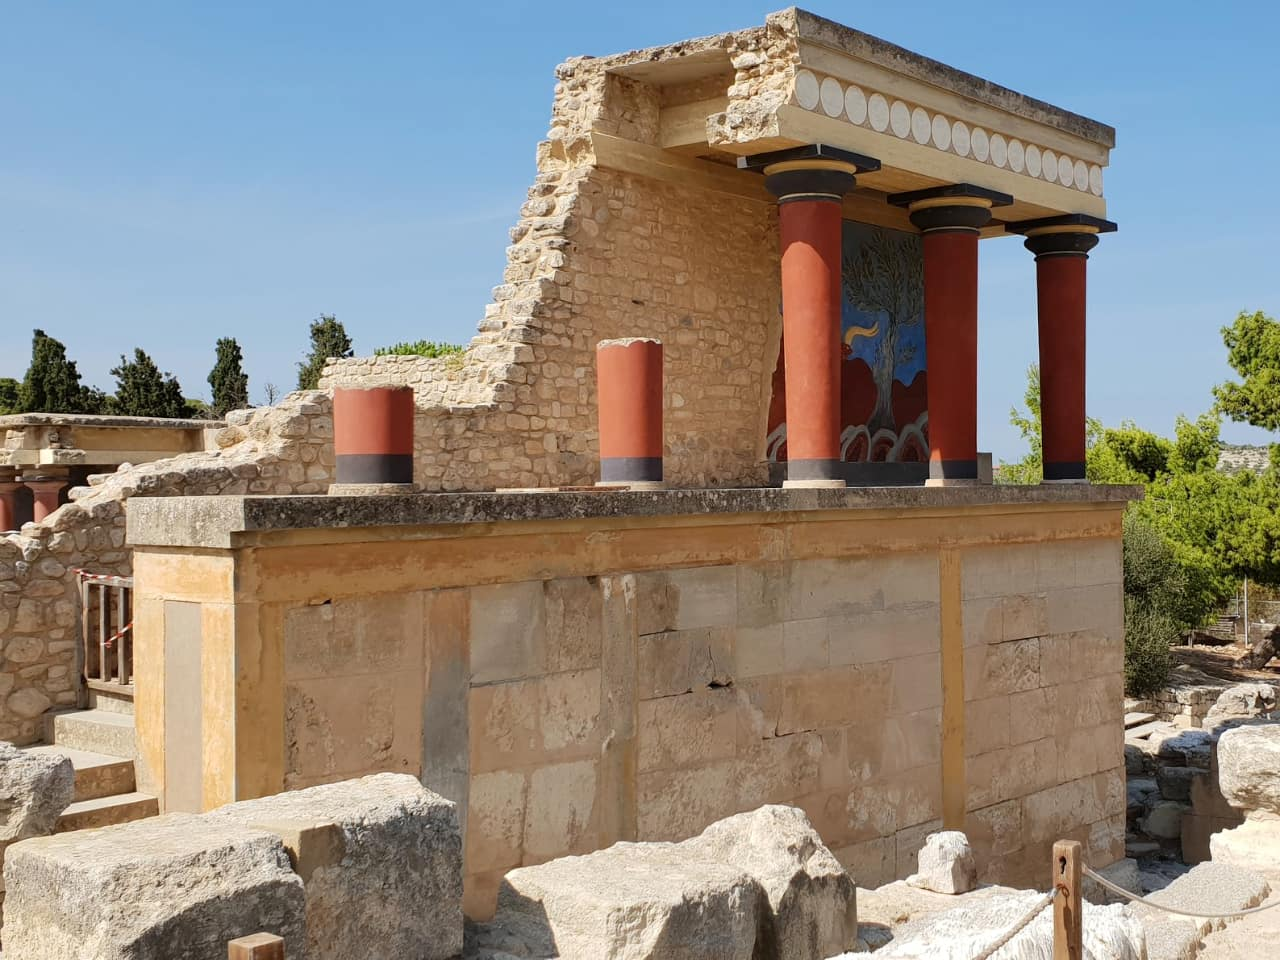 Minoan Palace Of Knossos & Archaeological Museum of Heraklion Private Tour, knossos museum iraklion tour, Archaeological Museum of Heraklion Private Tour, minoan palace of knossos best tour crete, heraklion activities, best things to do heraklion